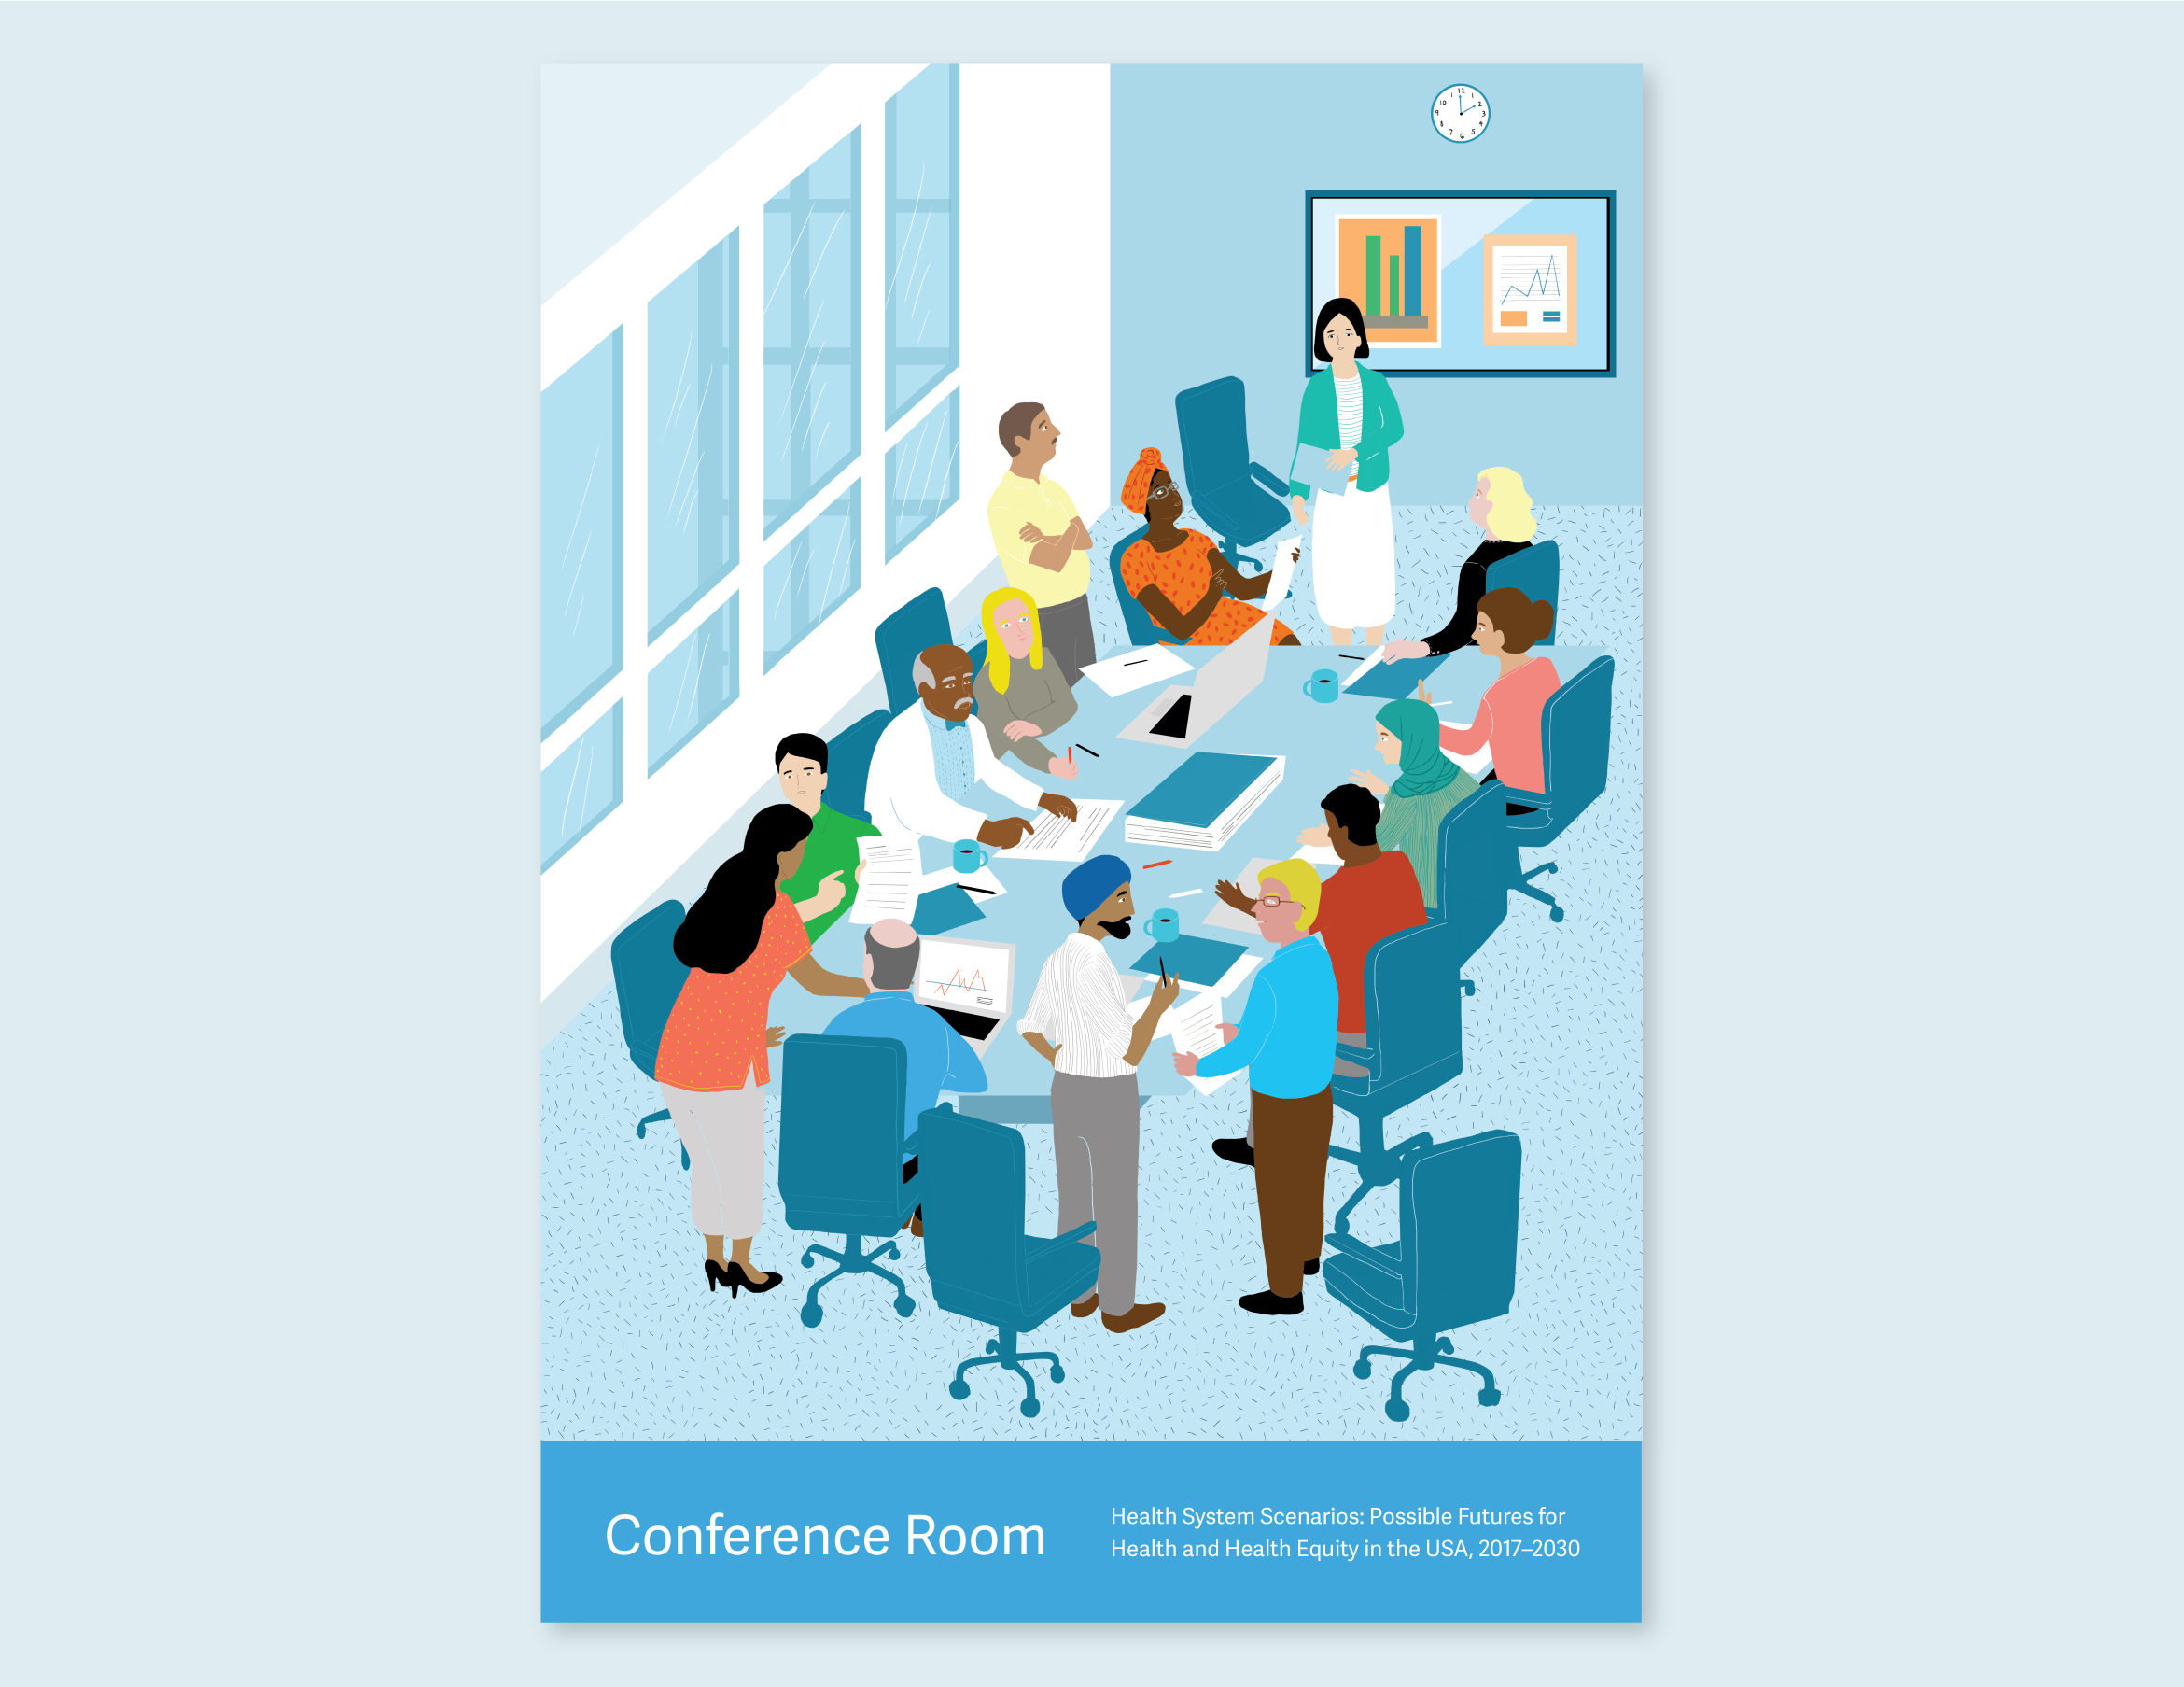 Illustration that represents the Conference Room.